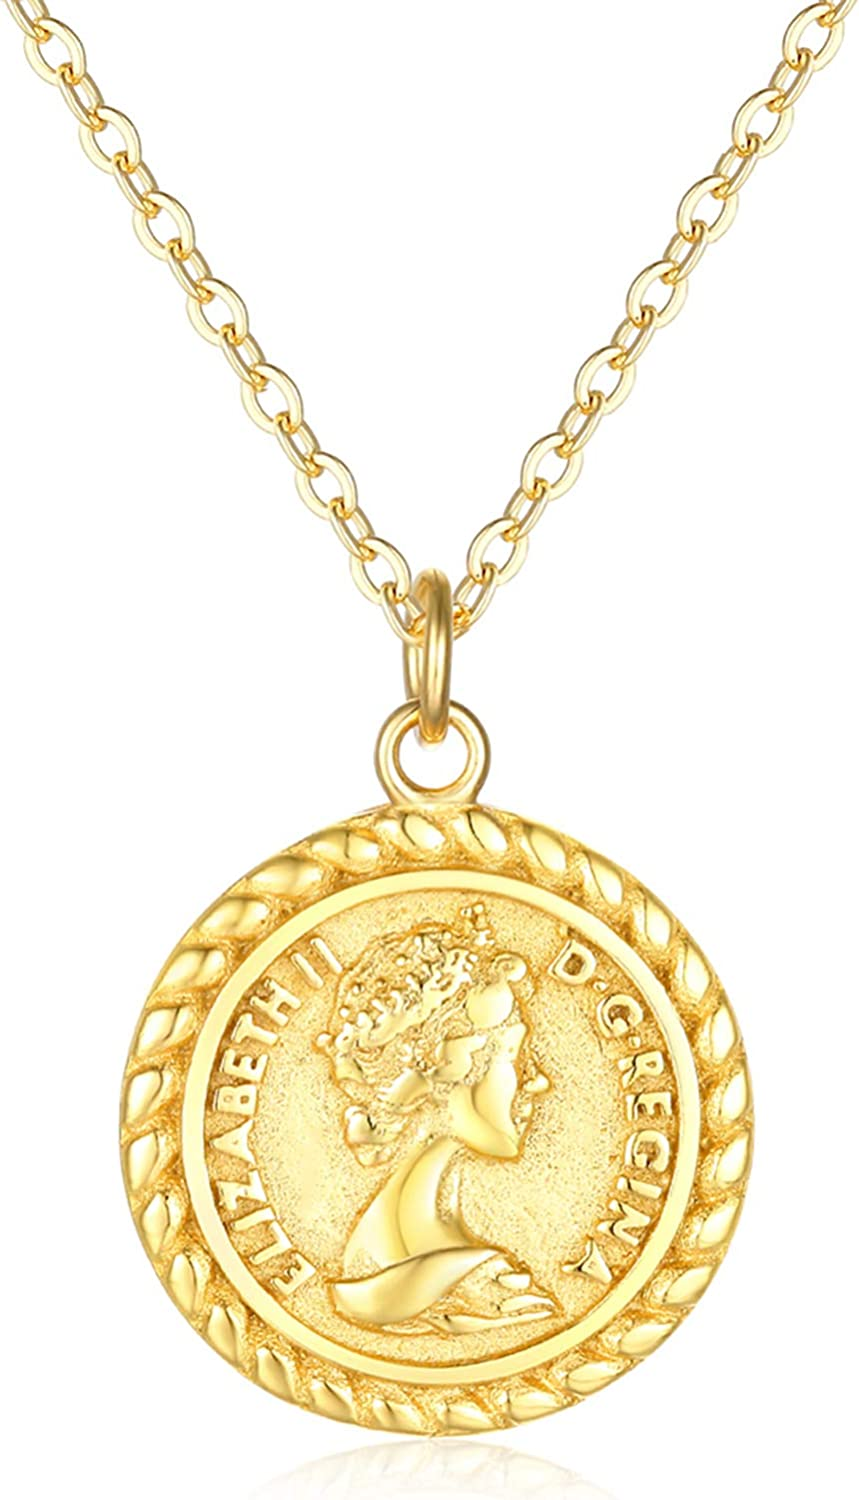 Amazon Com Vacrona Coin Necklace For Women 18k Gold Plated Vintage Coin Round Pendant Necklace Gold Layered Coin Choker Necklace Circle Disk Medal Textured Medallion Protection Dainty Jewelry Gift For Her Clothing